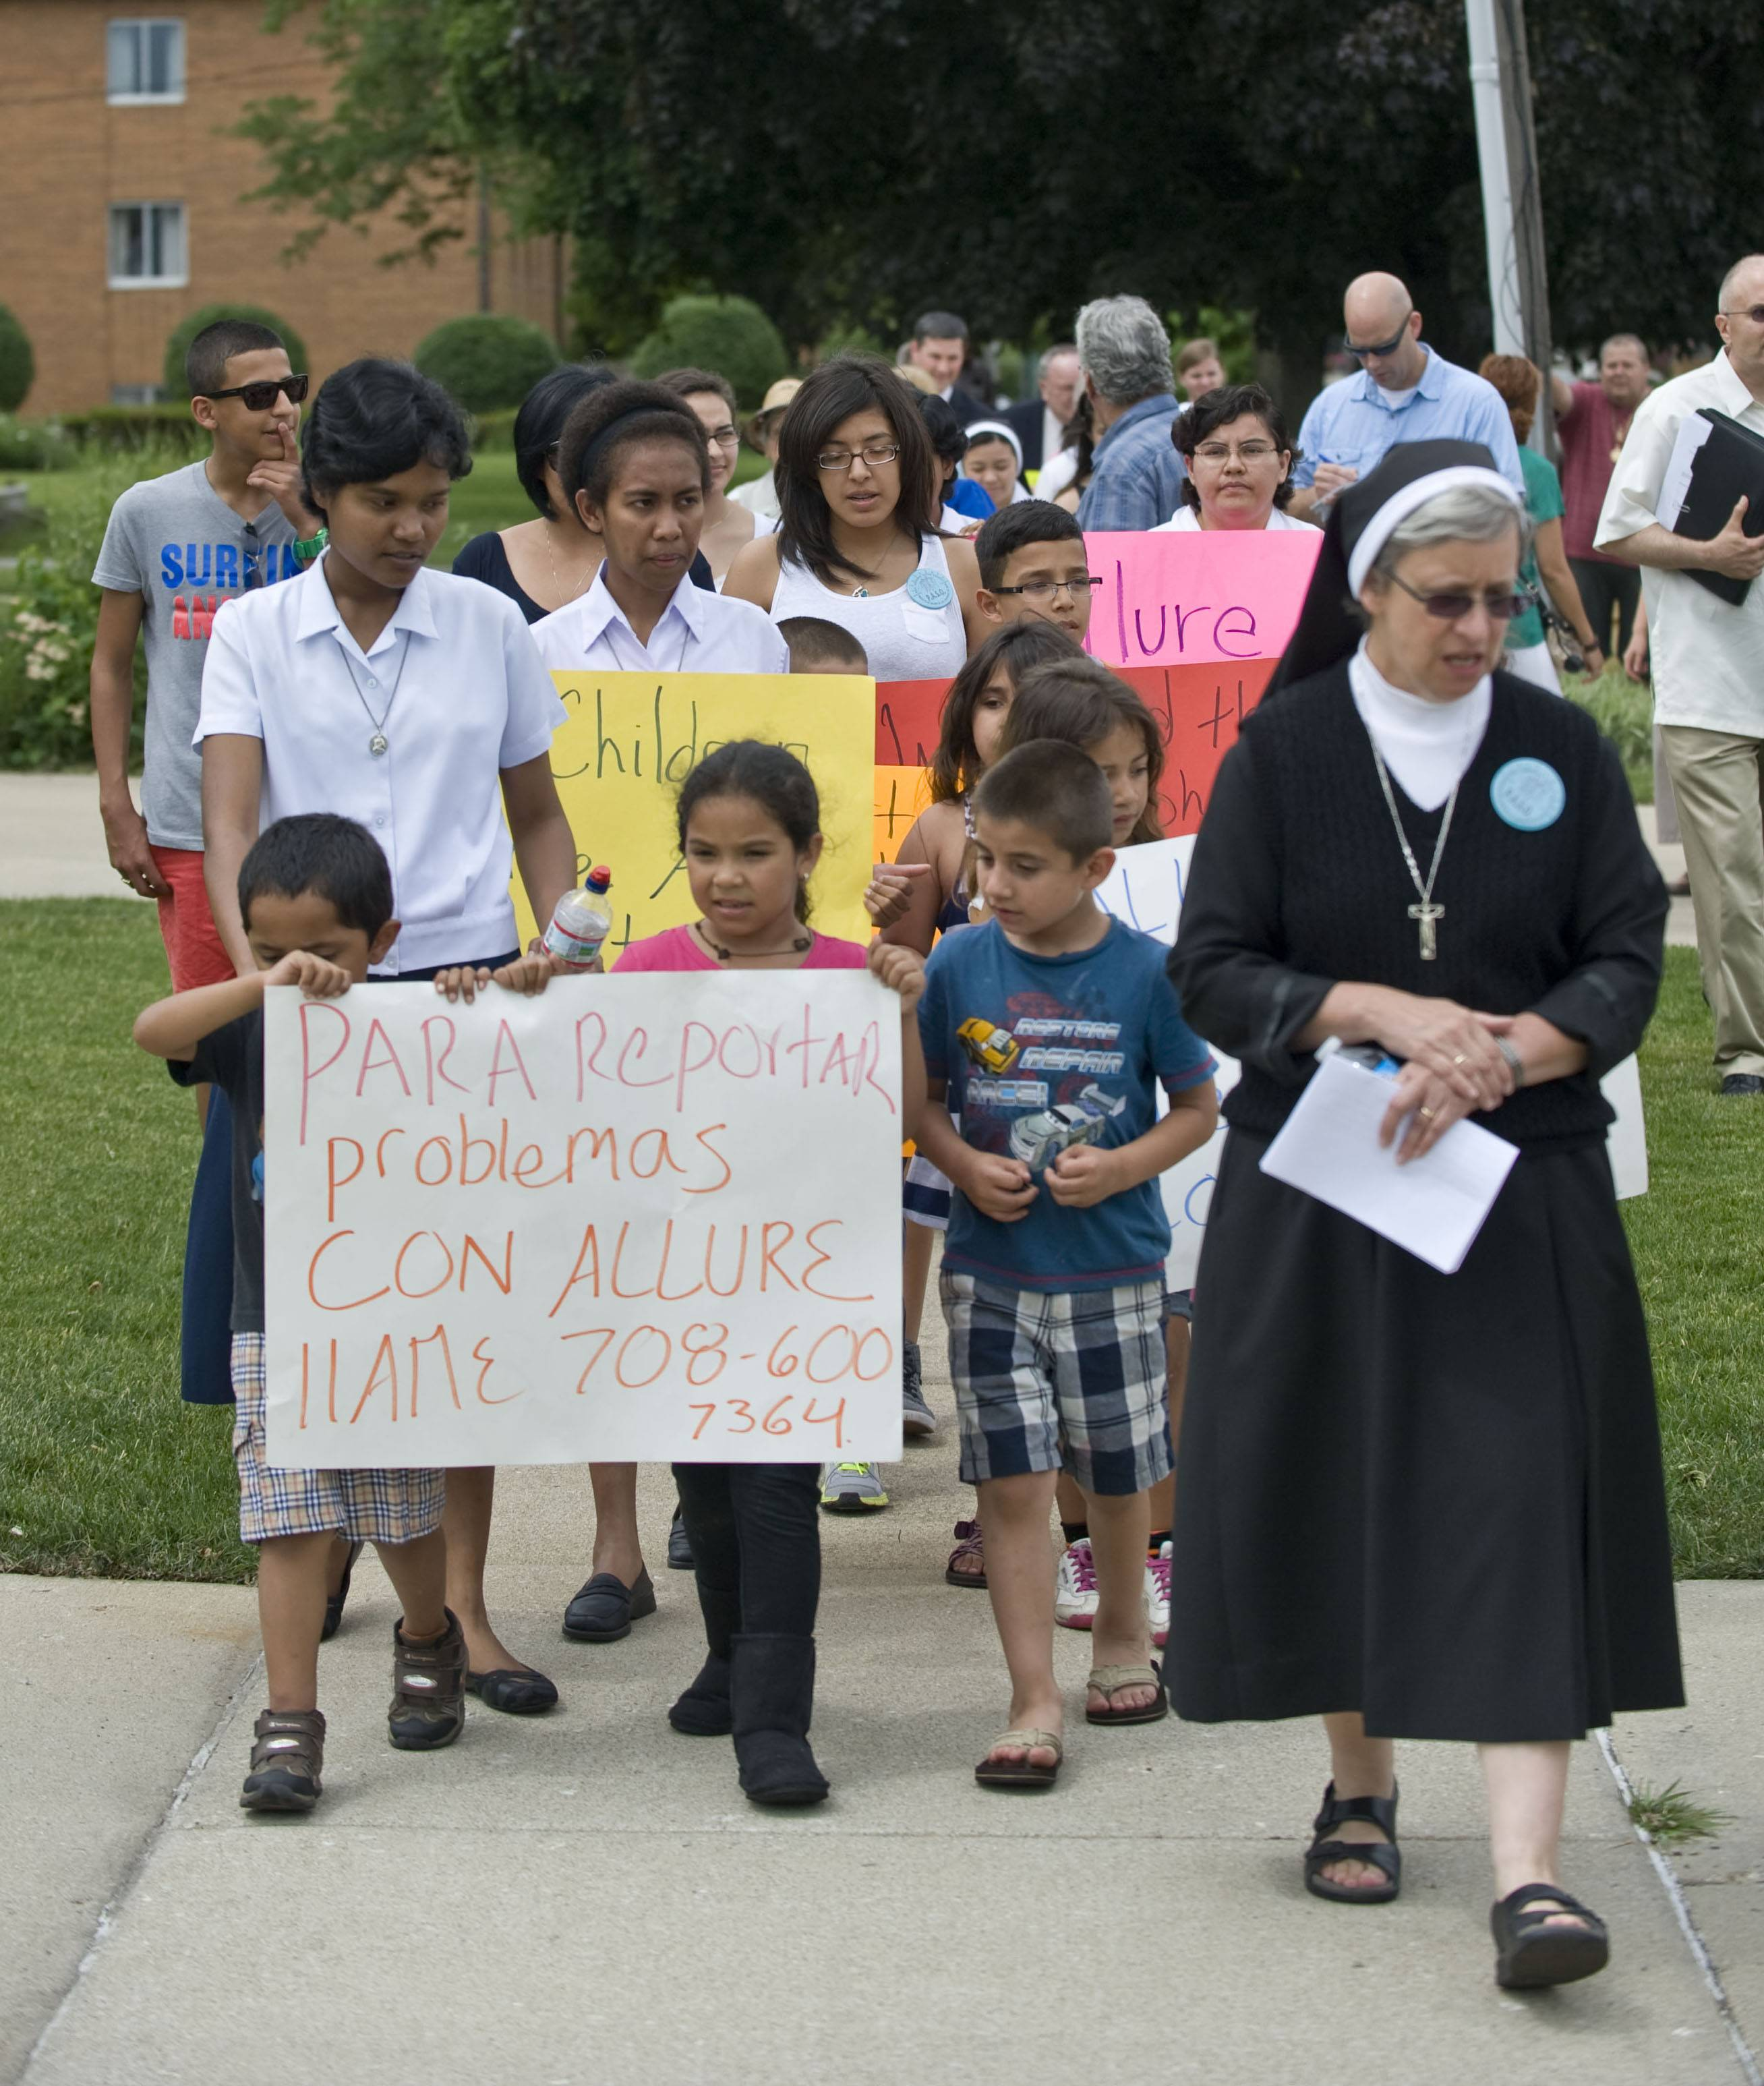 At right, sister Noemia Silva of the Missionary Sisters of Saint Charles Borromeo Scalabrinians walks with children and neighbors Wednesday to Club Allure Chicago, a strip club, to protest its proximity to their convent.